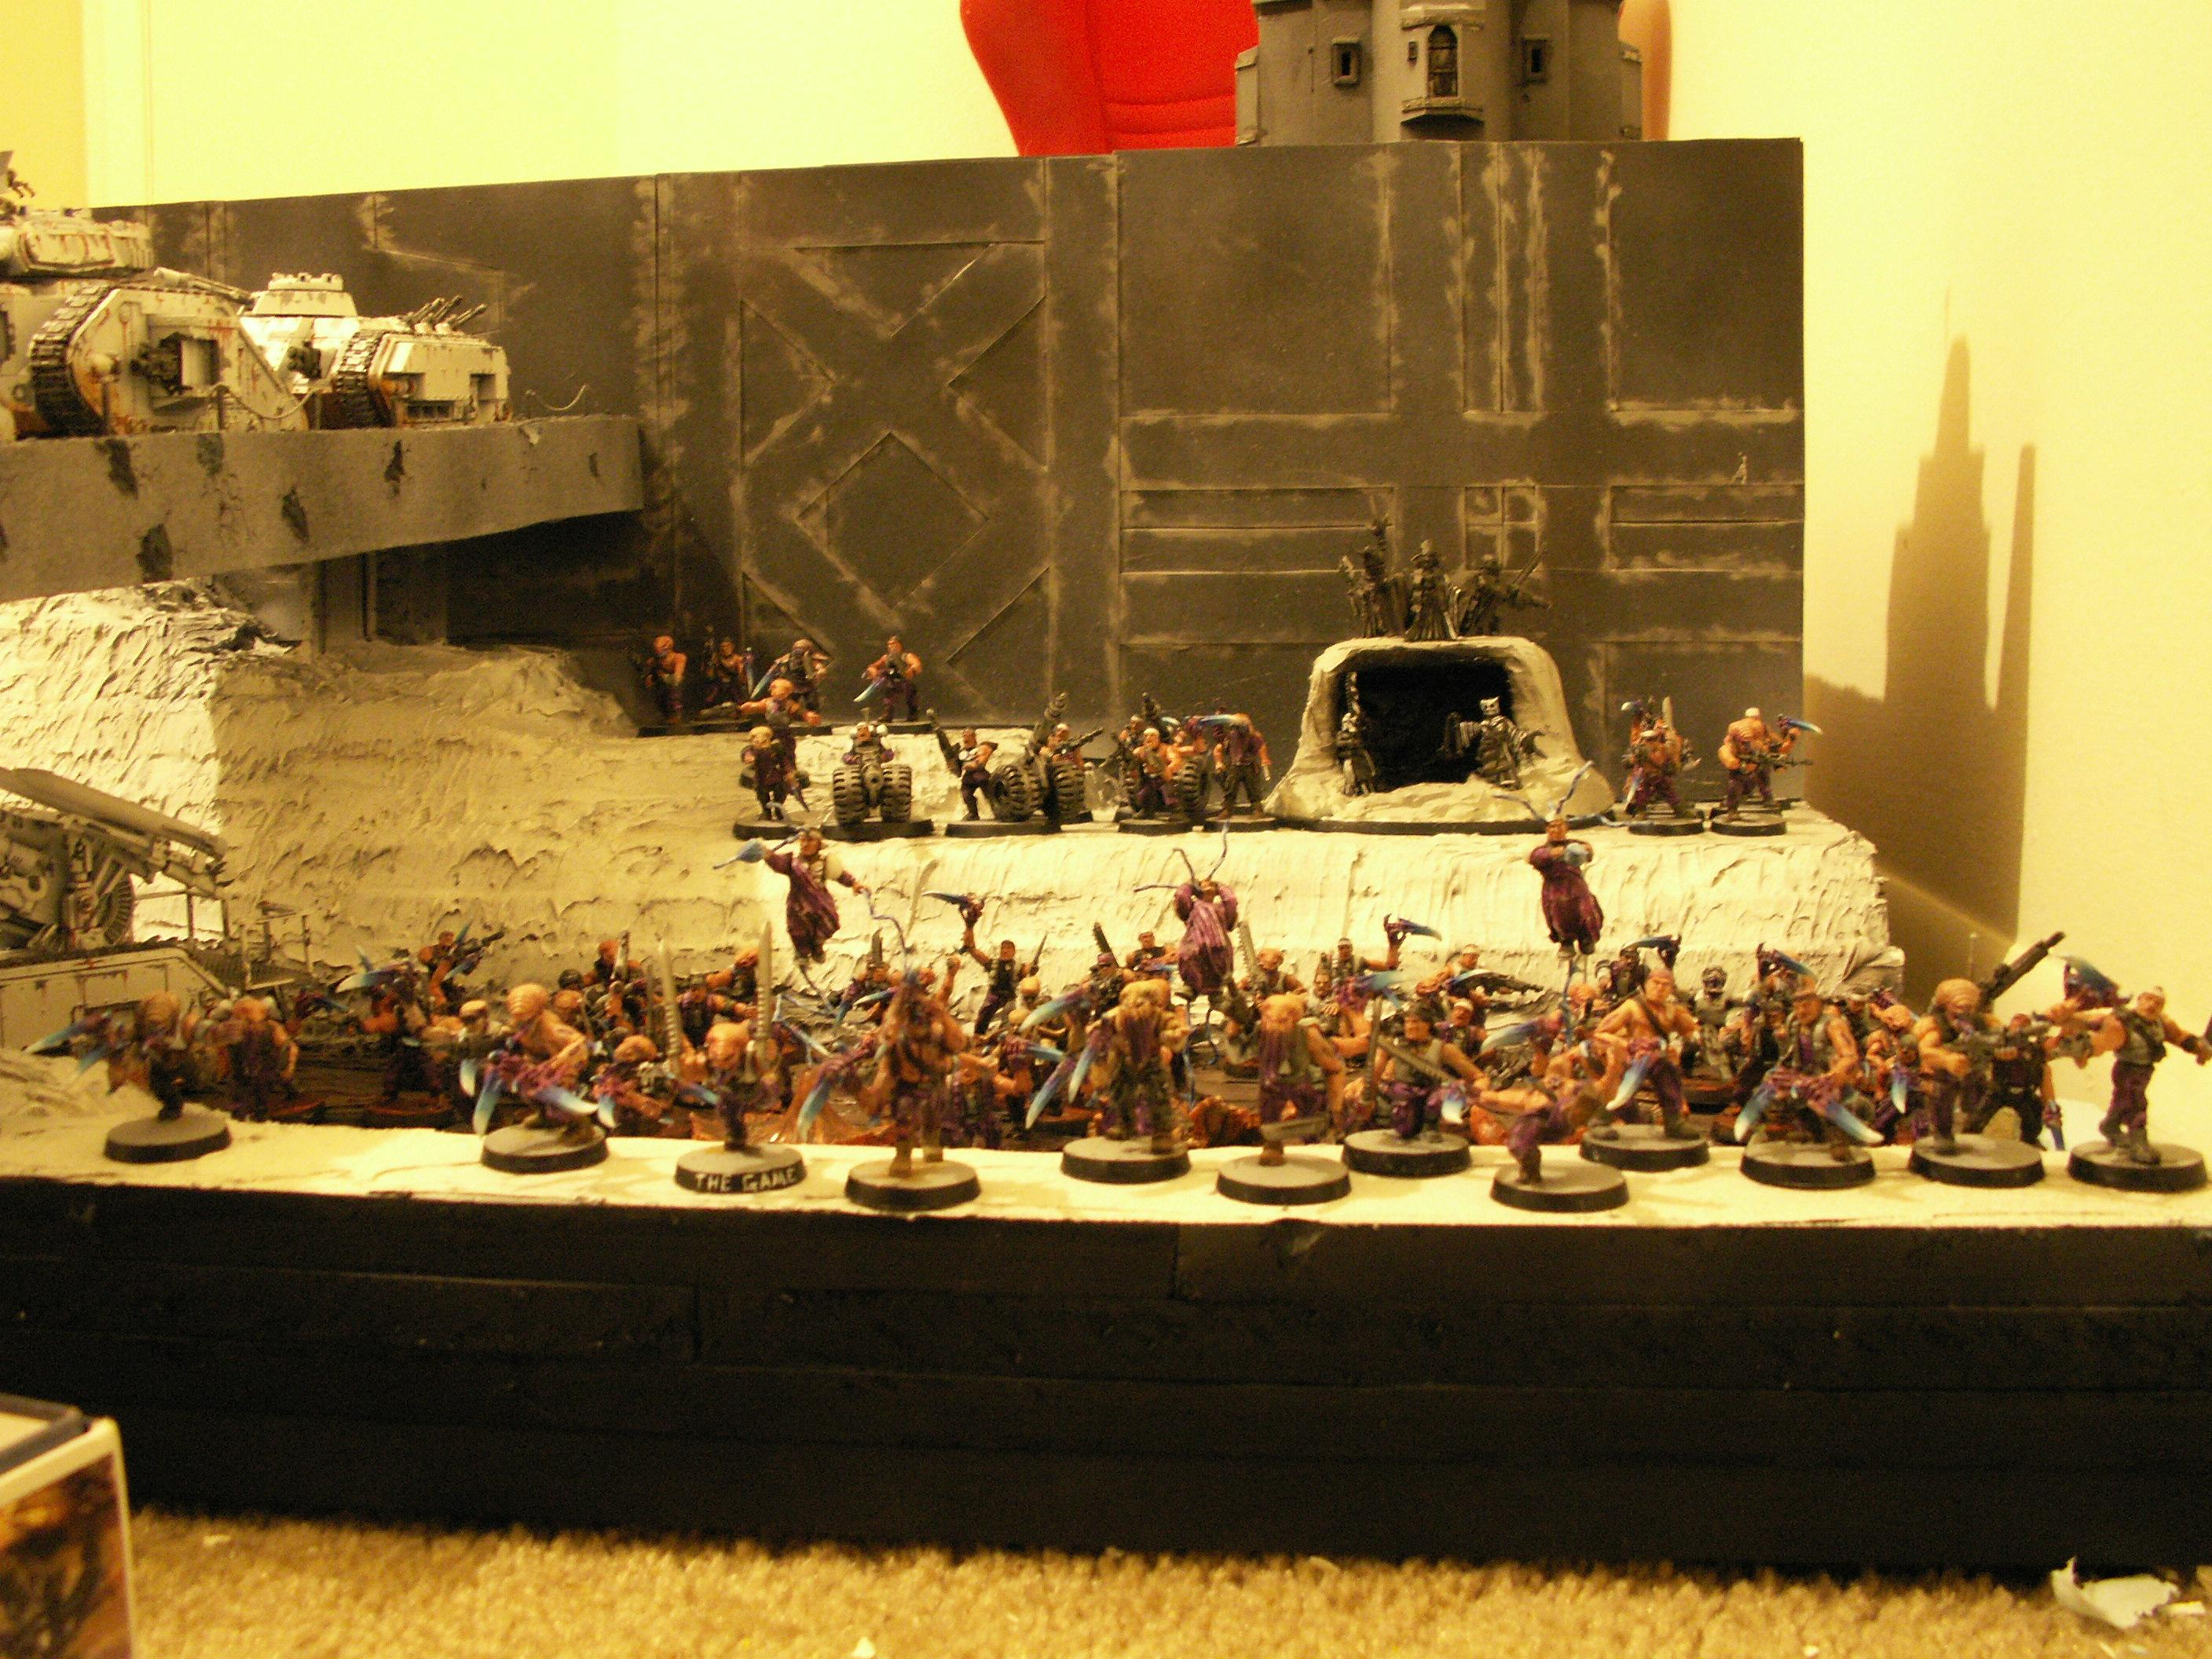 Adepticon, Adepticon 2010, Display Board, Genestealer, Genestealer Cult, Imperial Guard, Warhammer 40,000